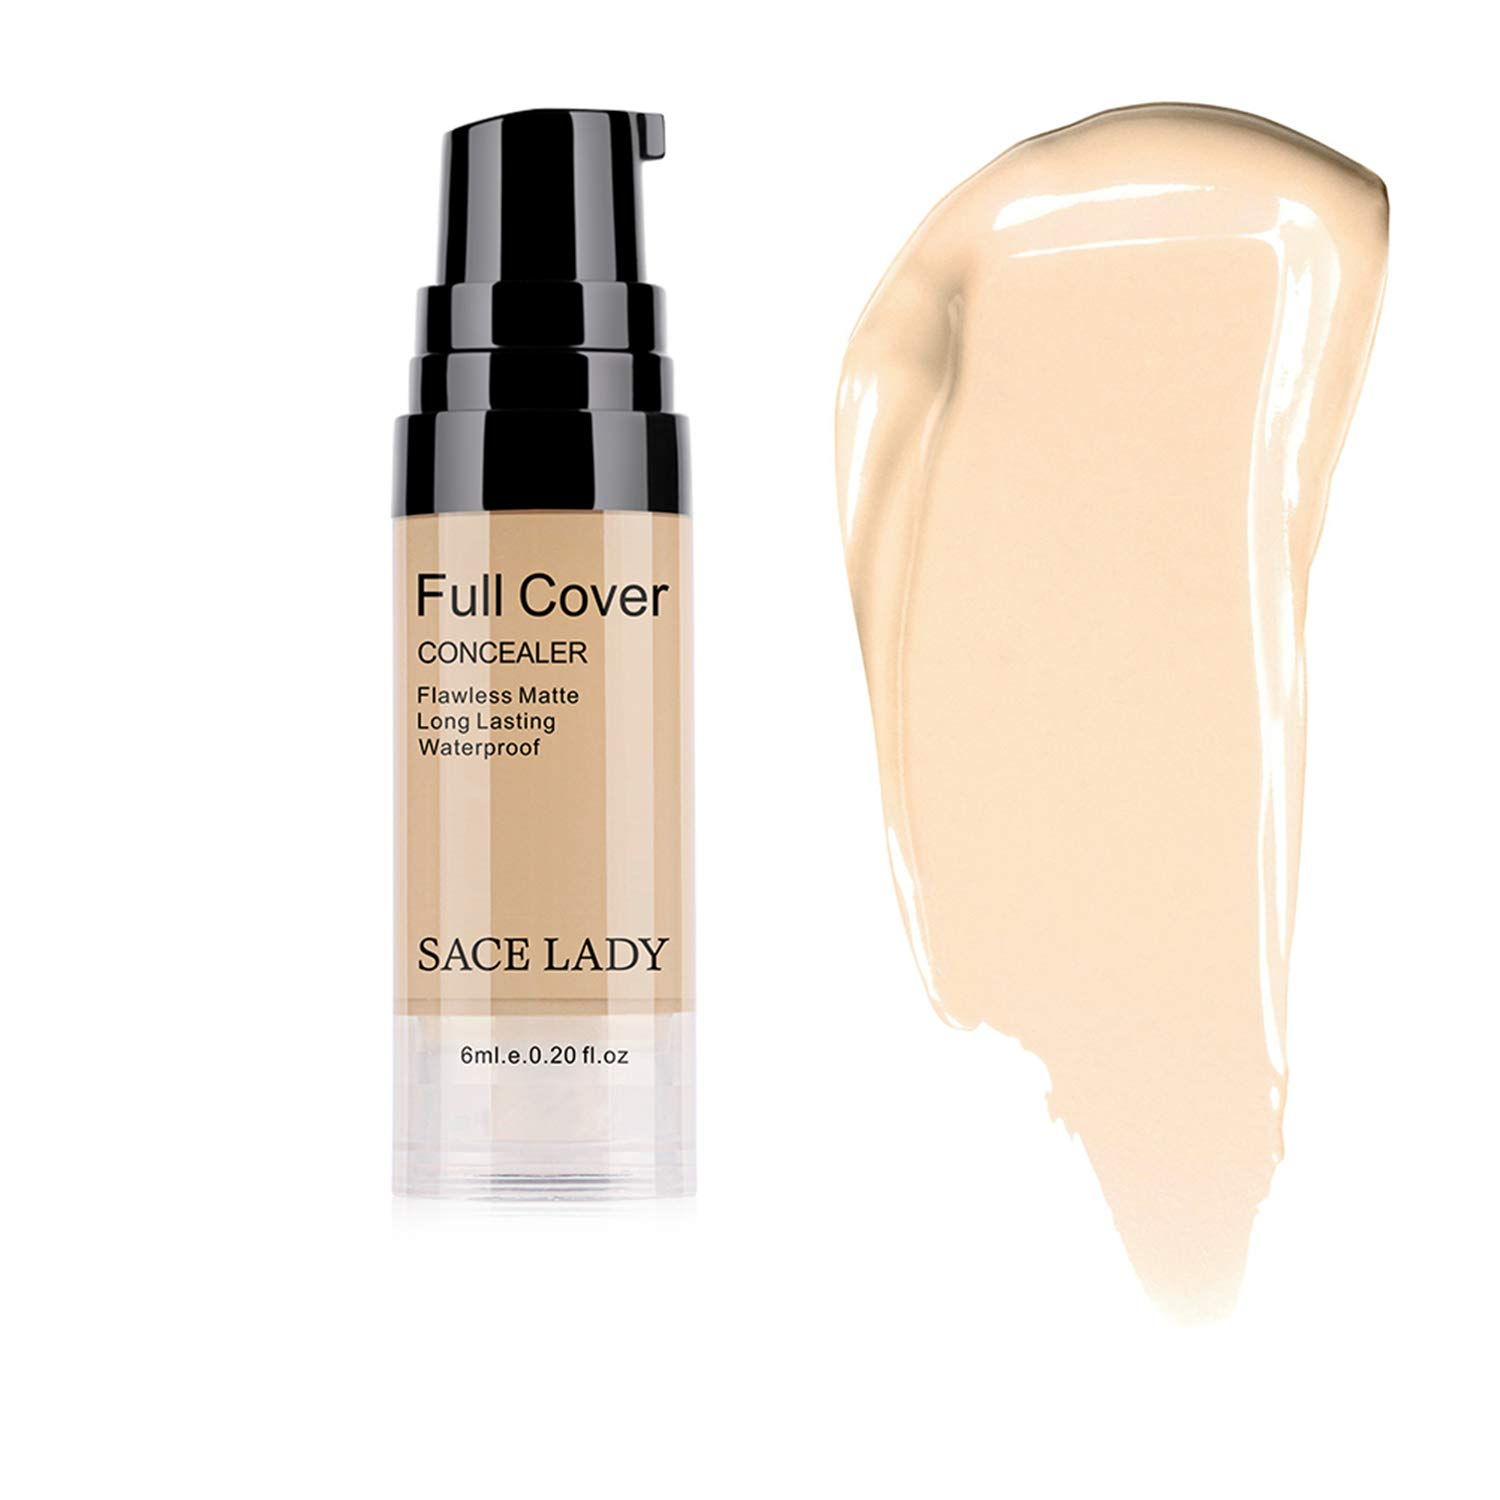 SACE LADY Under Eye 5 ☆ very popular Concealer Makeup Full Coverage safety L Anti-aging